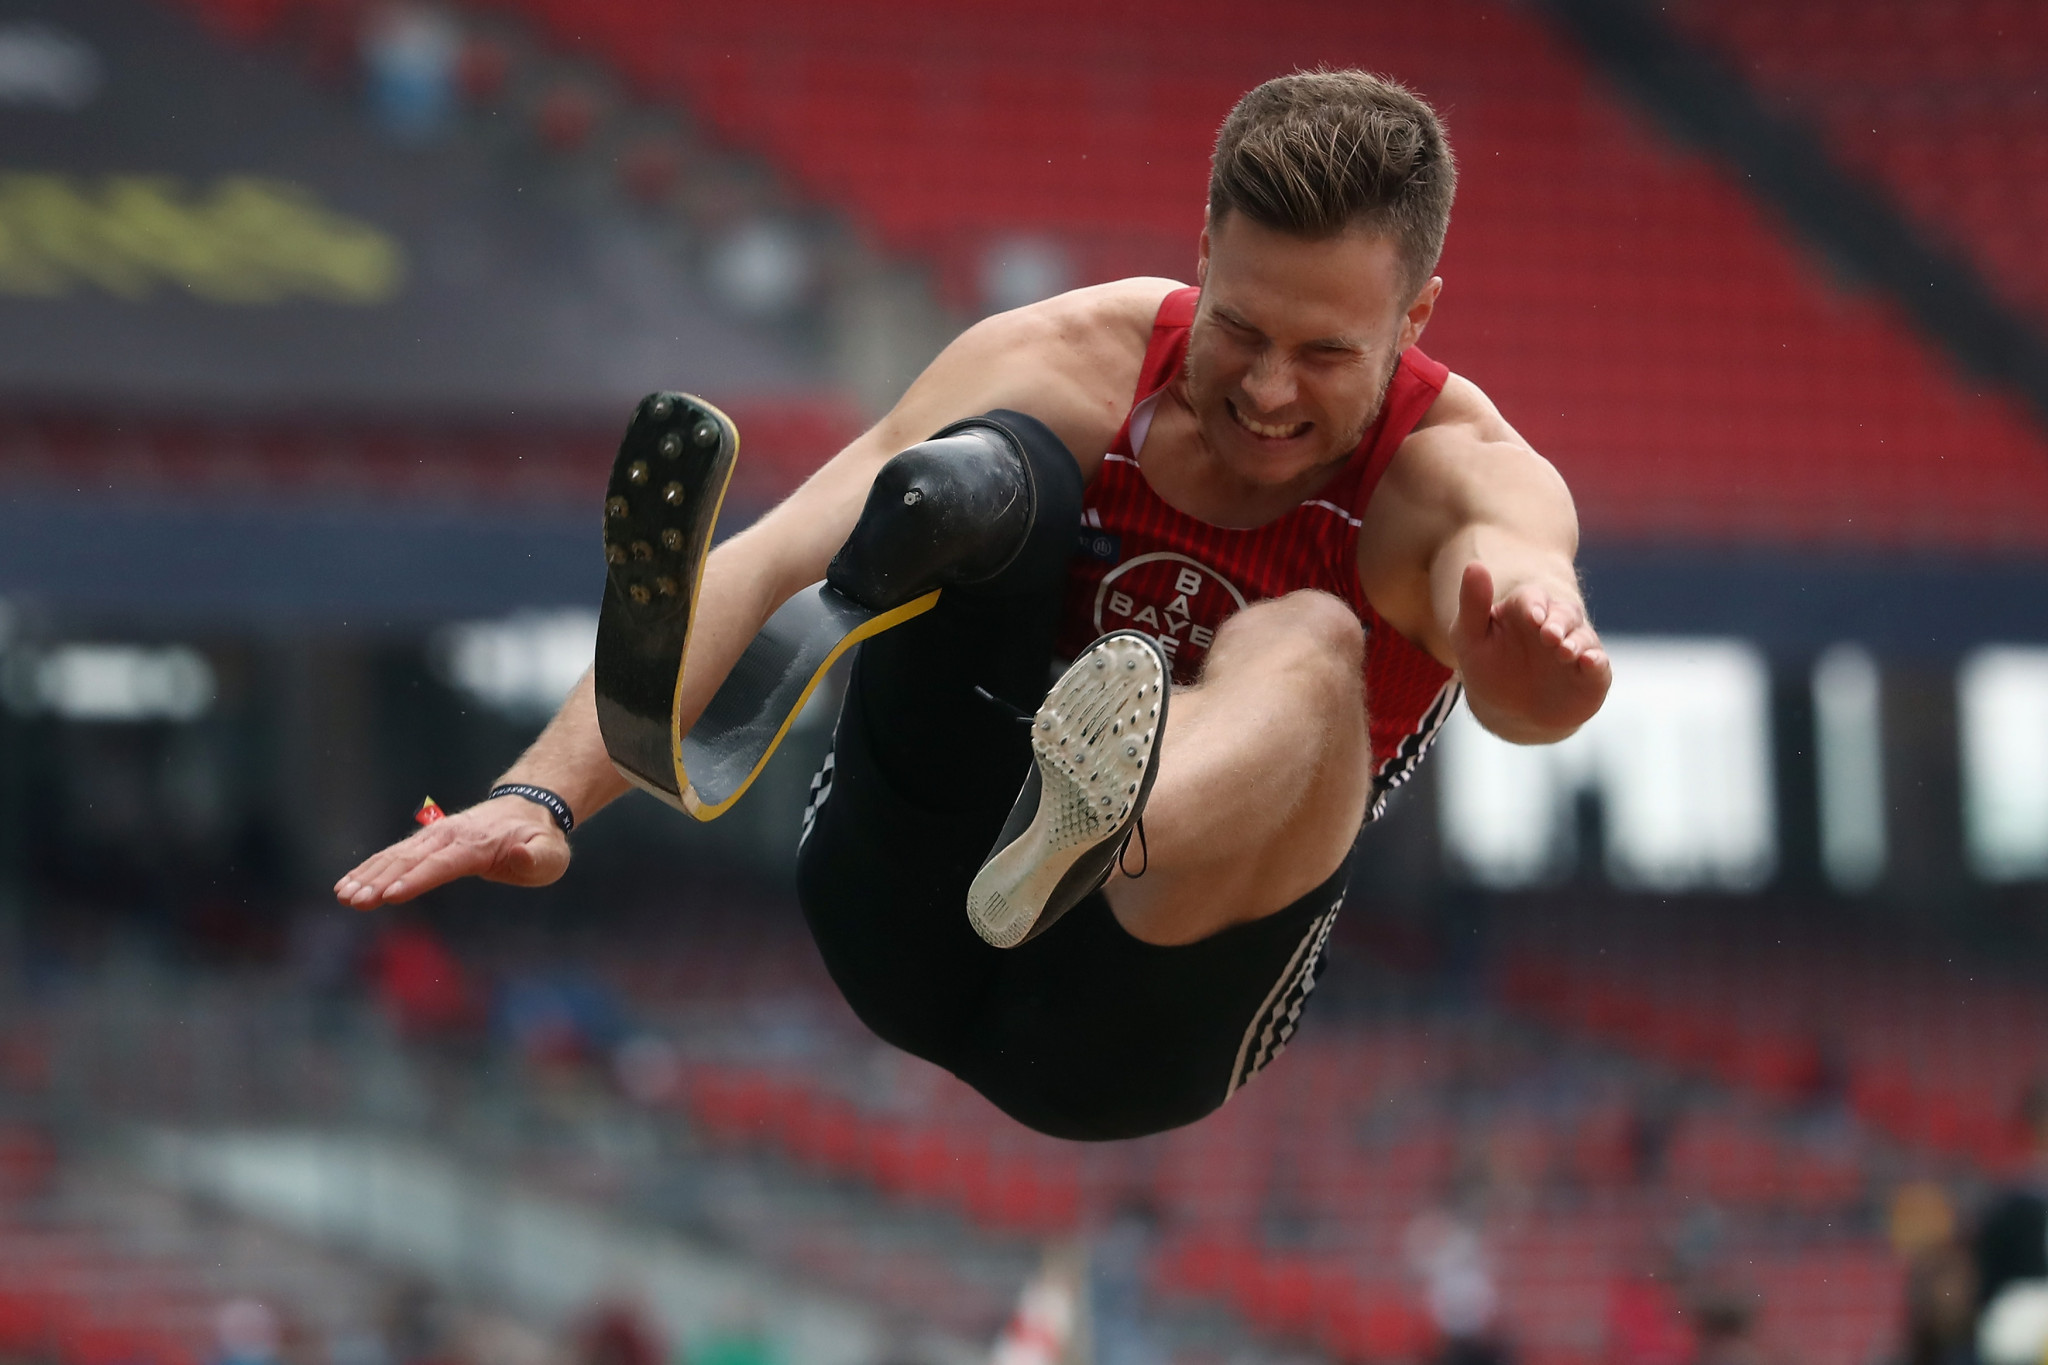 Rehm sets world record with stunning jump at World Para Athletics European Championships in Berlin